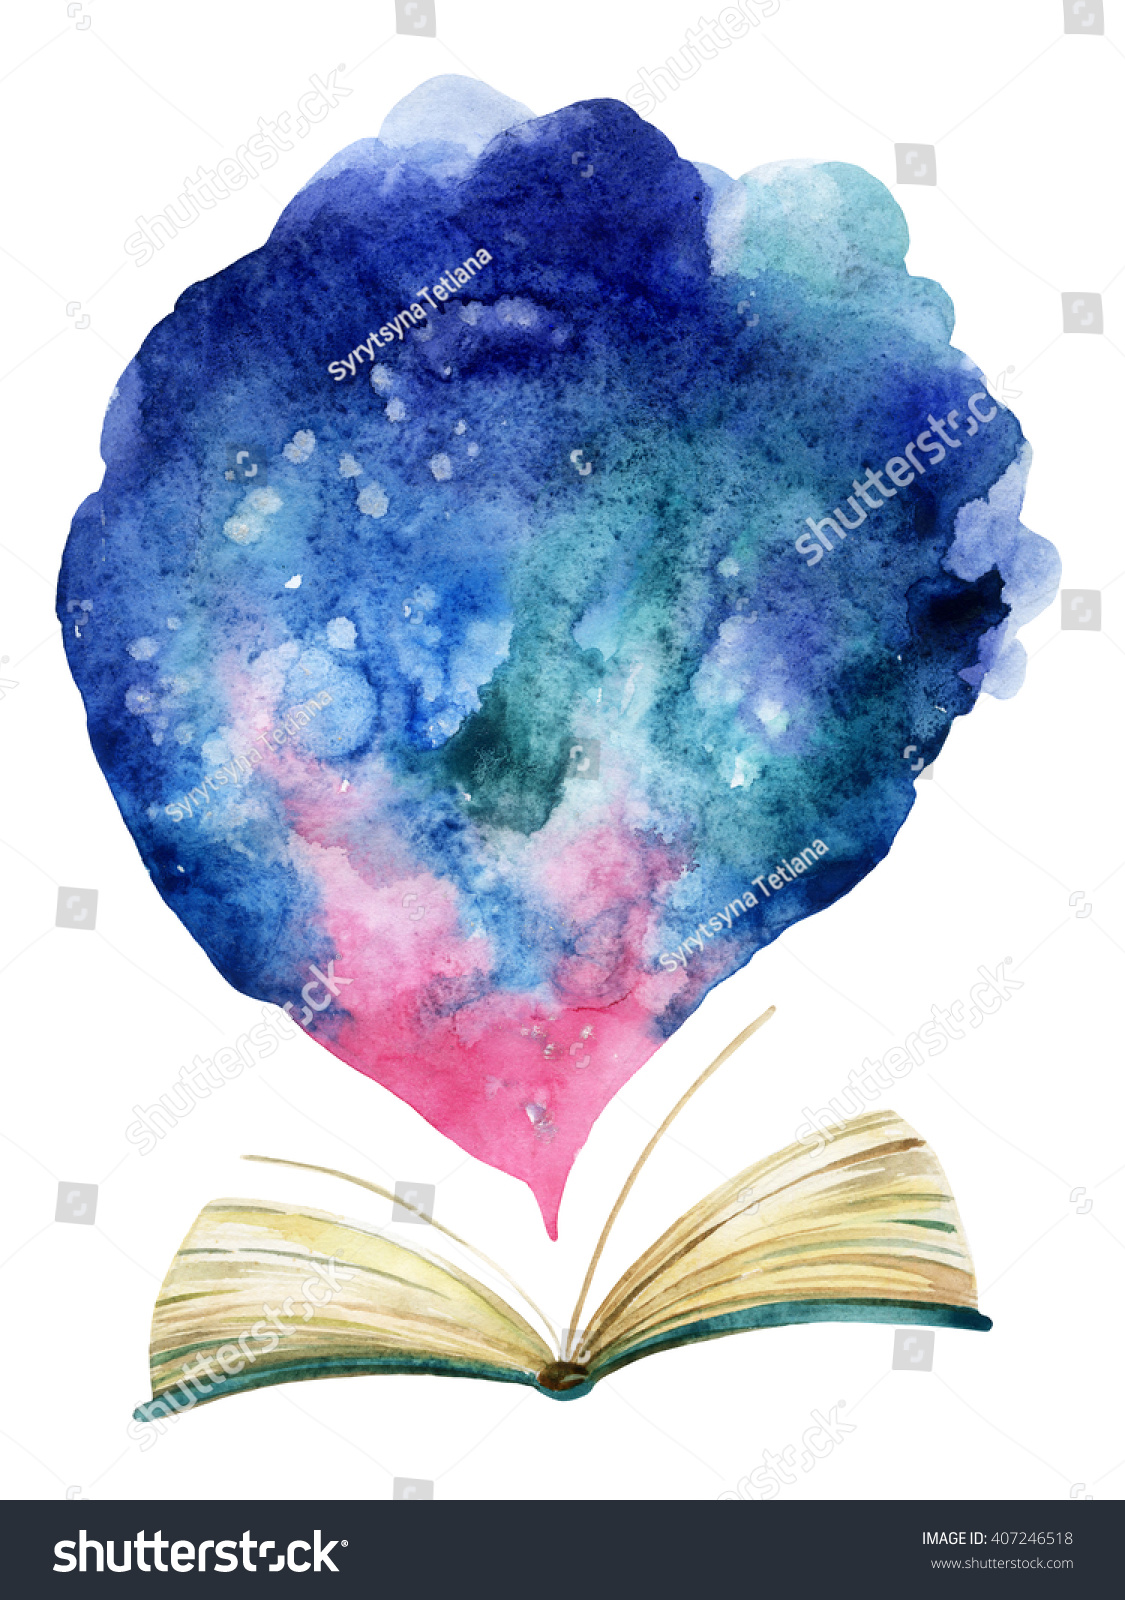 Book Cover Watercolor Paint : Watercolor open book magic cloud whole stock illustration